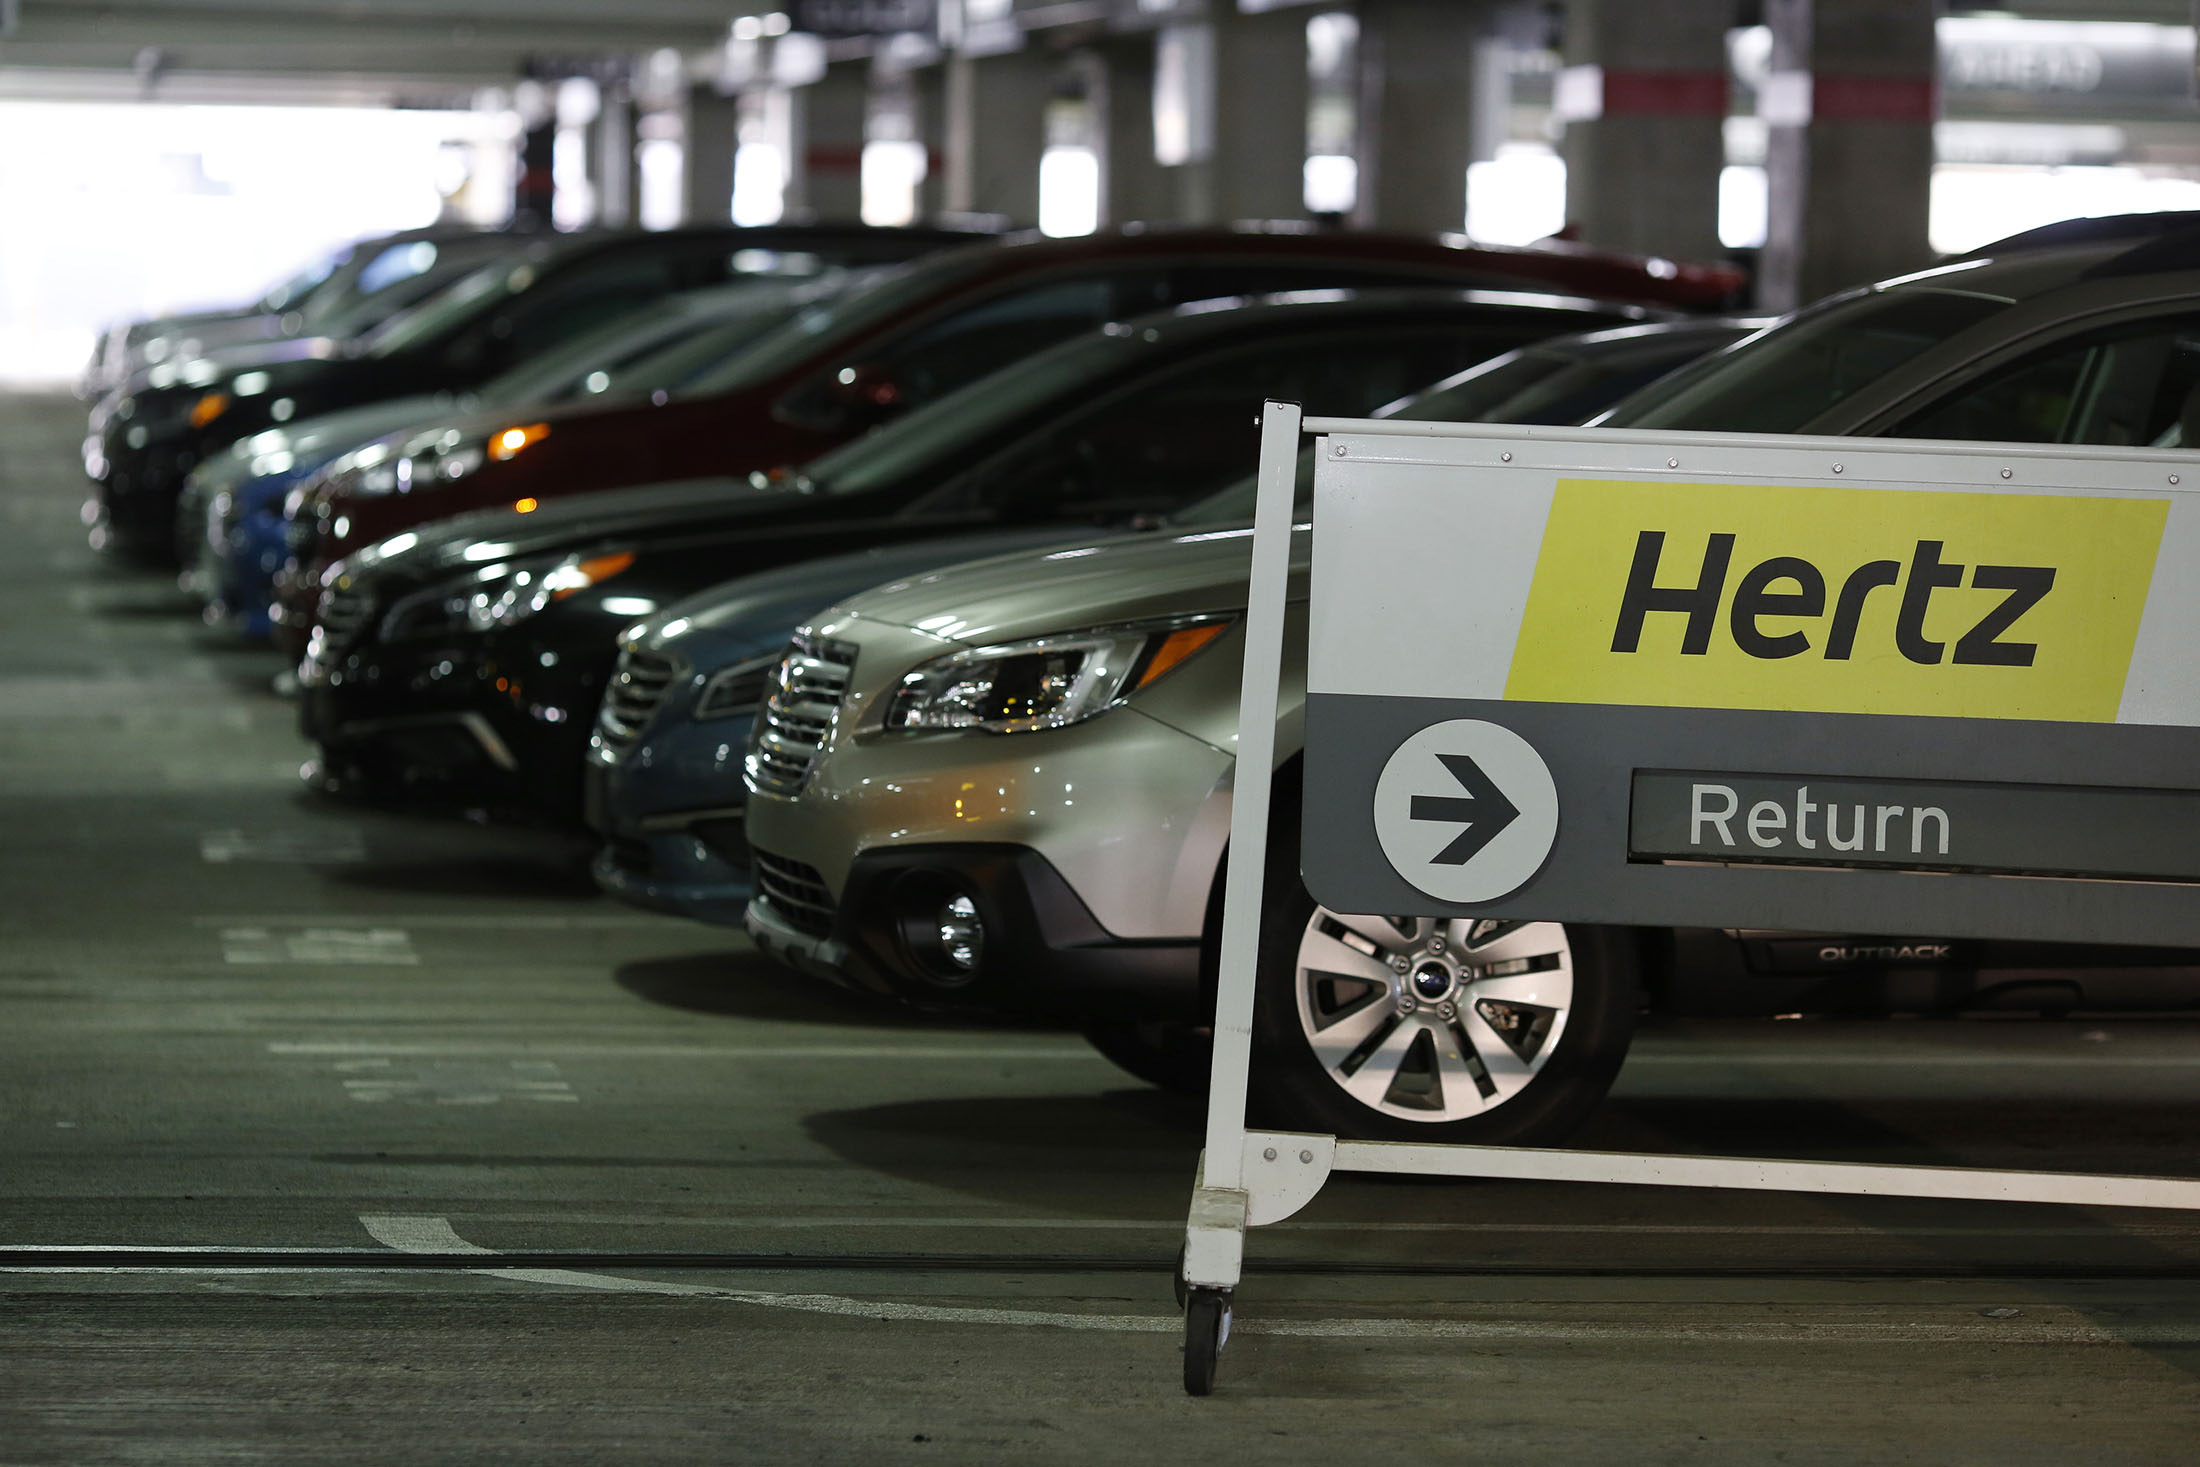 Hertz Used Cars for Sale Near Me Fresh Hertz Shares Bear Brunt Of Freak Out Over Used Car Price Drop